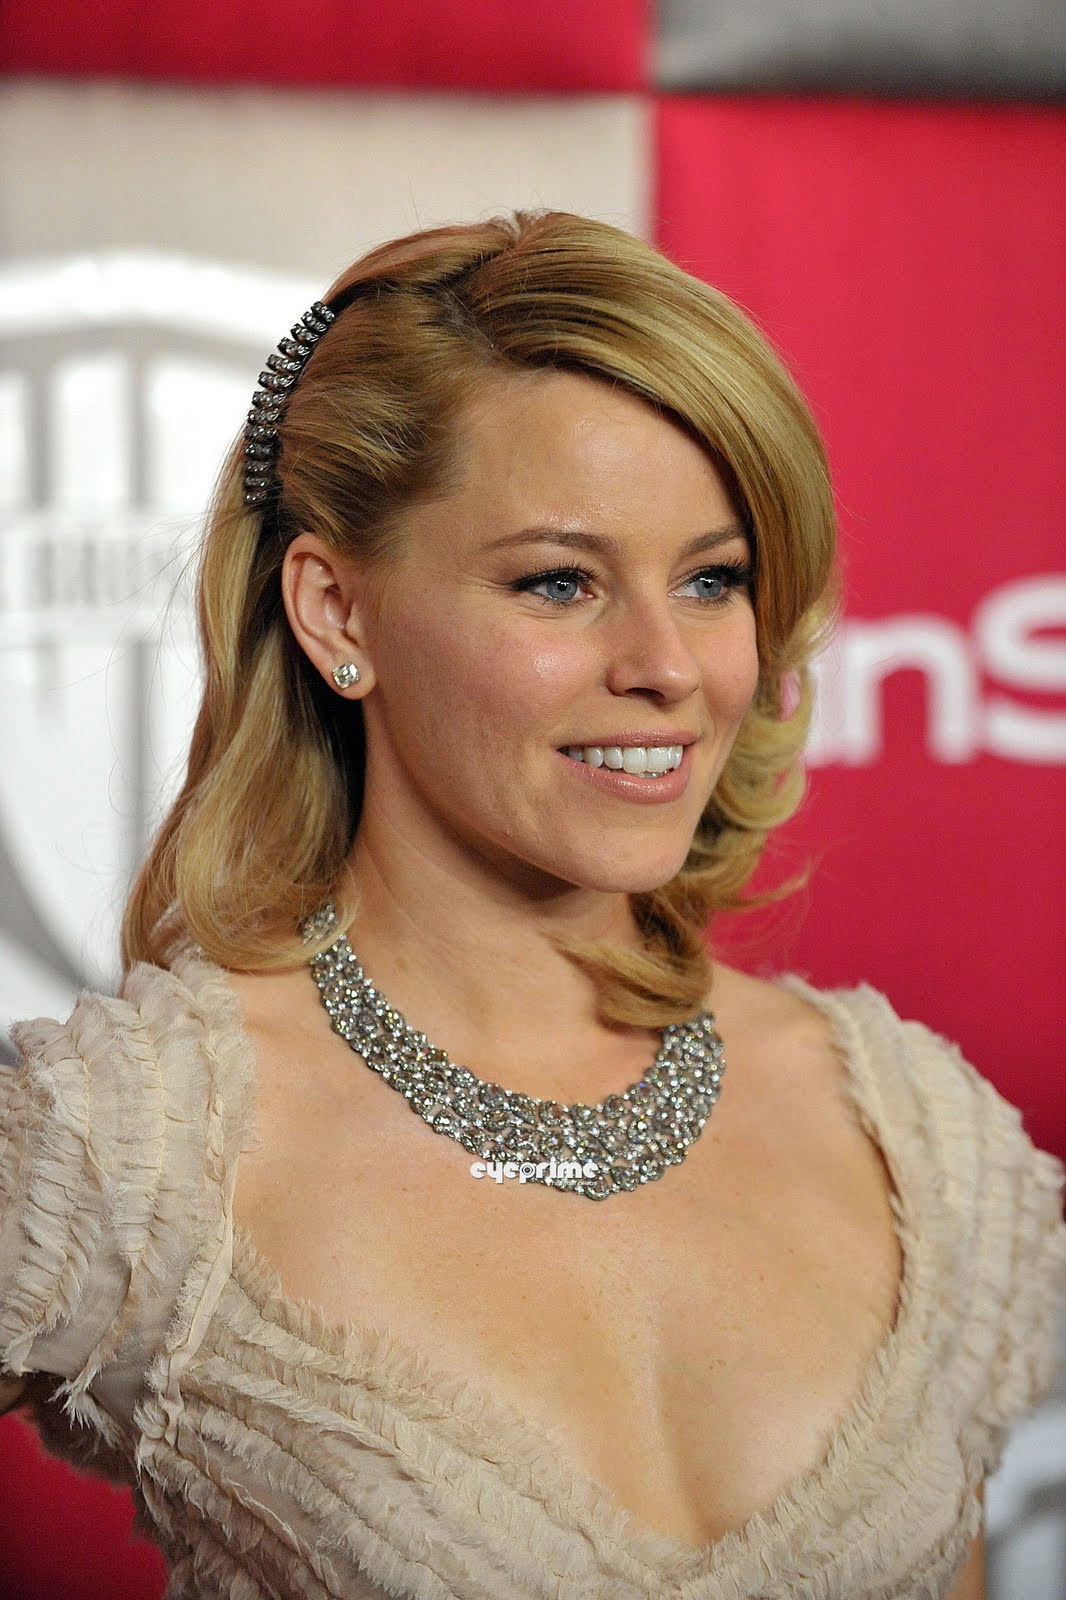 Elizabeth Banks - Gallery Photo Colection